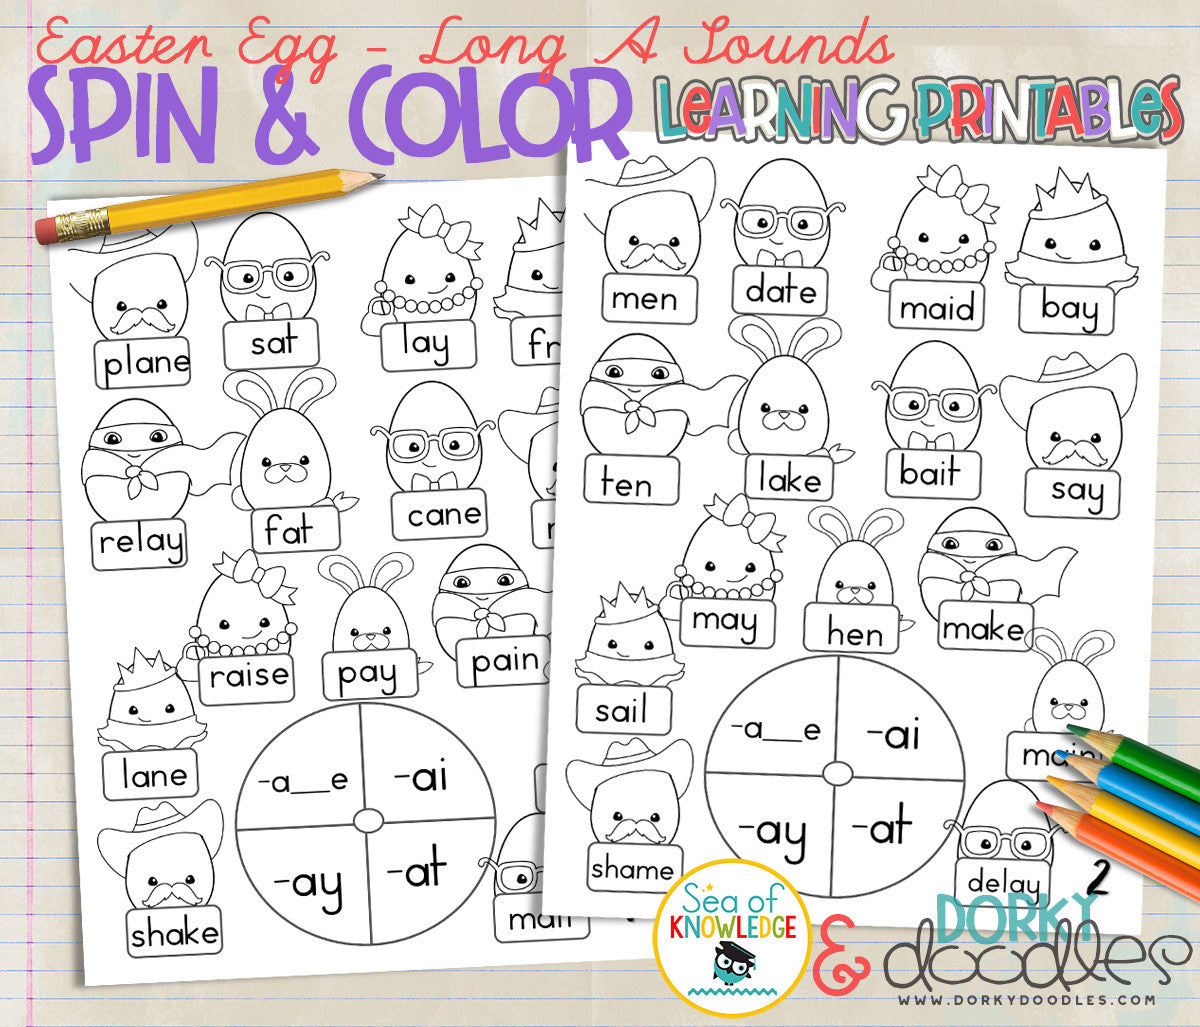 Printable colored easter eggs -  The Long A Letter Sound And The Different Ways It Shows Up In Words With These Fun Spin And Color Printable Worksheets Featuring Cute Easter Eggs